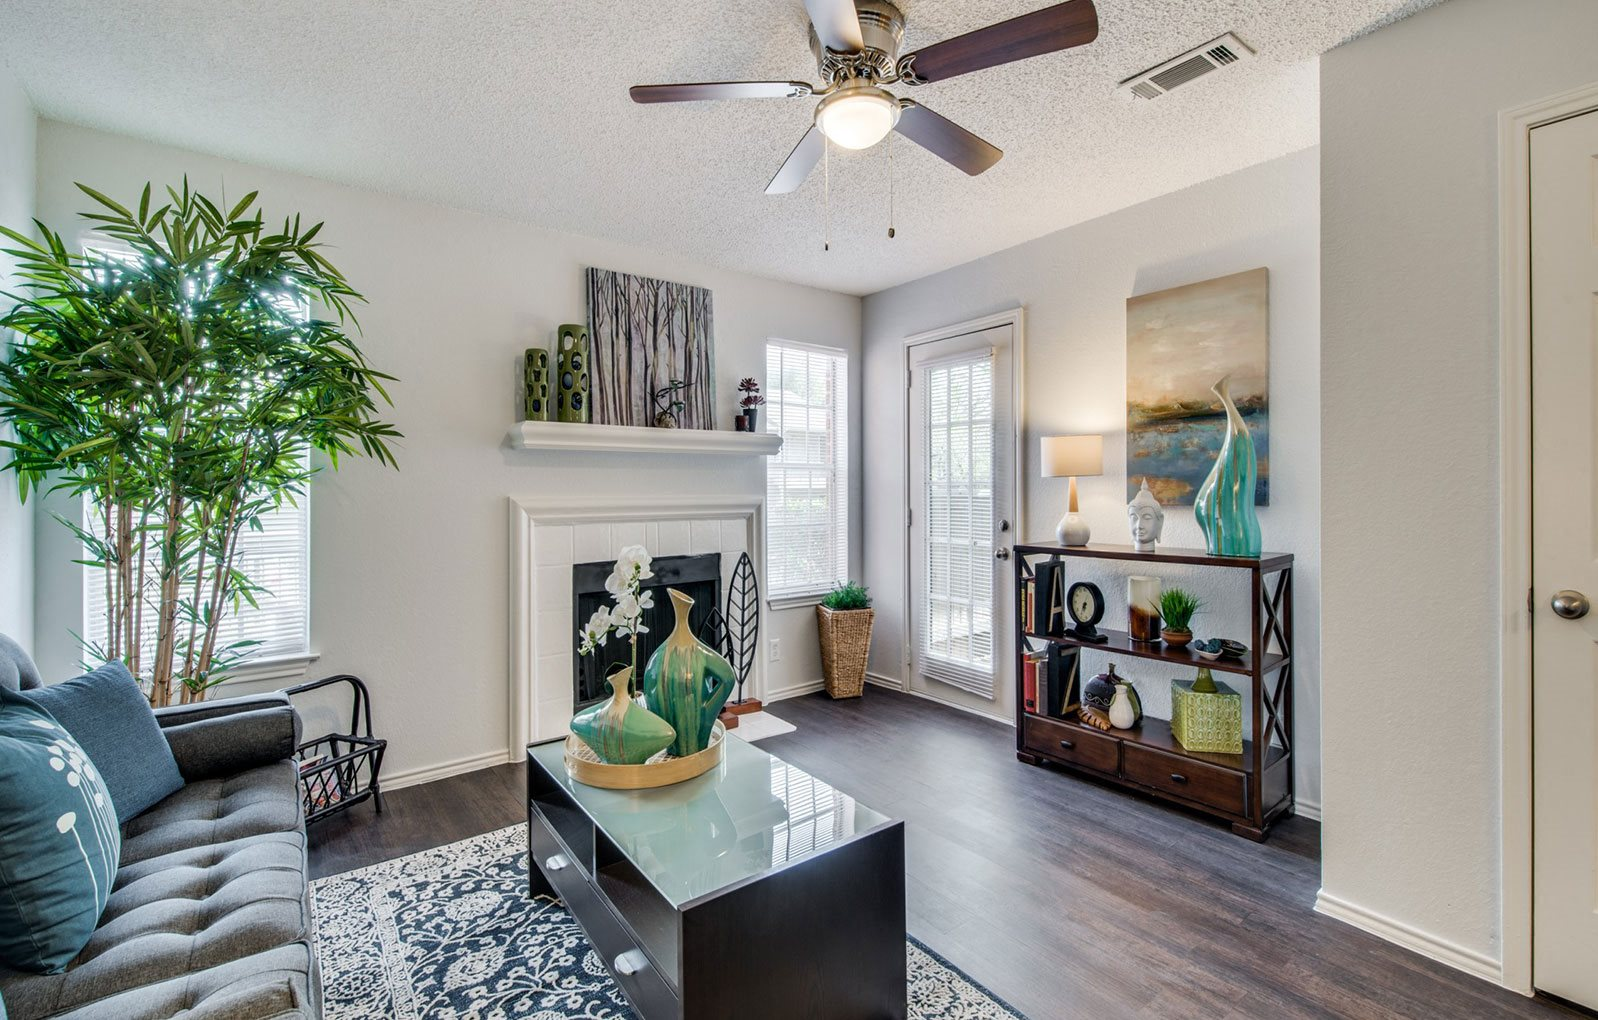 Living Room With Standard Fireplace at CLEAR Property Management , Wildwood Apartments, Texas, 78752